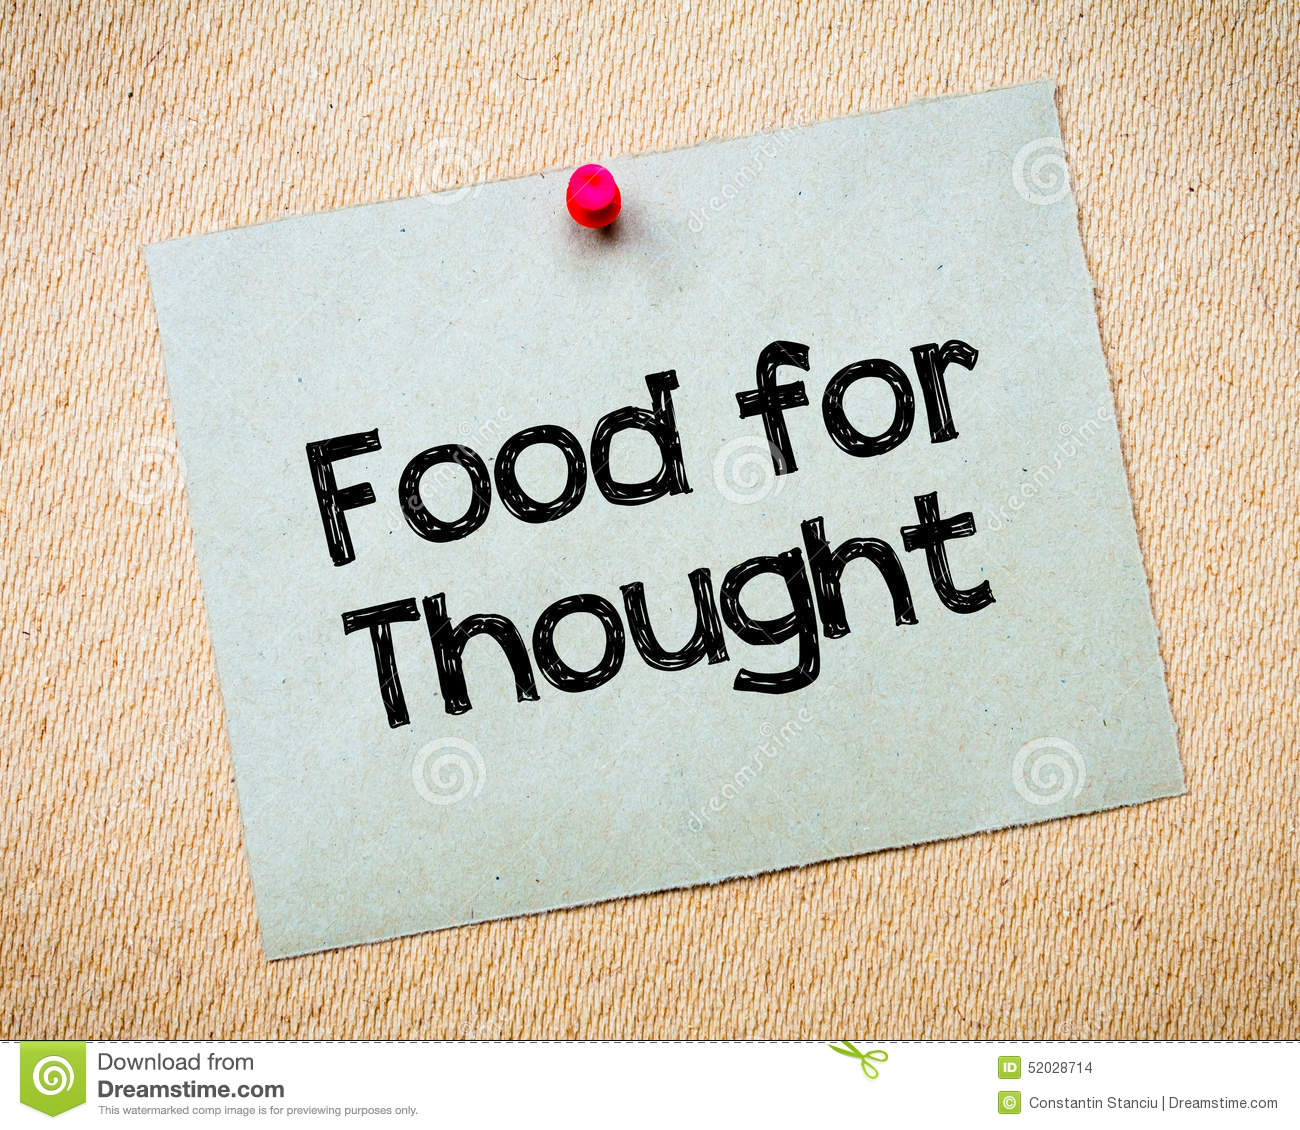 Food for thought clipart clipart download Food For Thought Stock Photo - Image: 52028714 clipart download